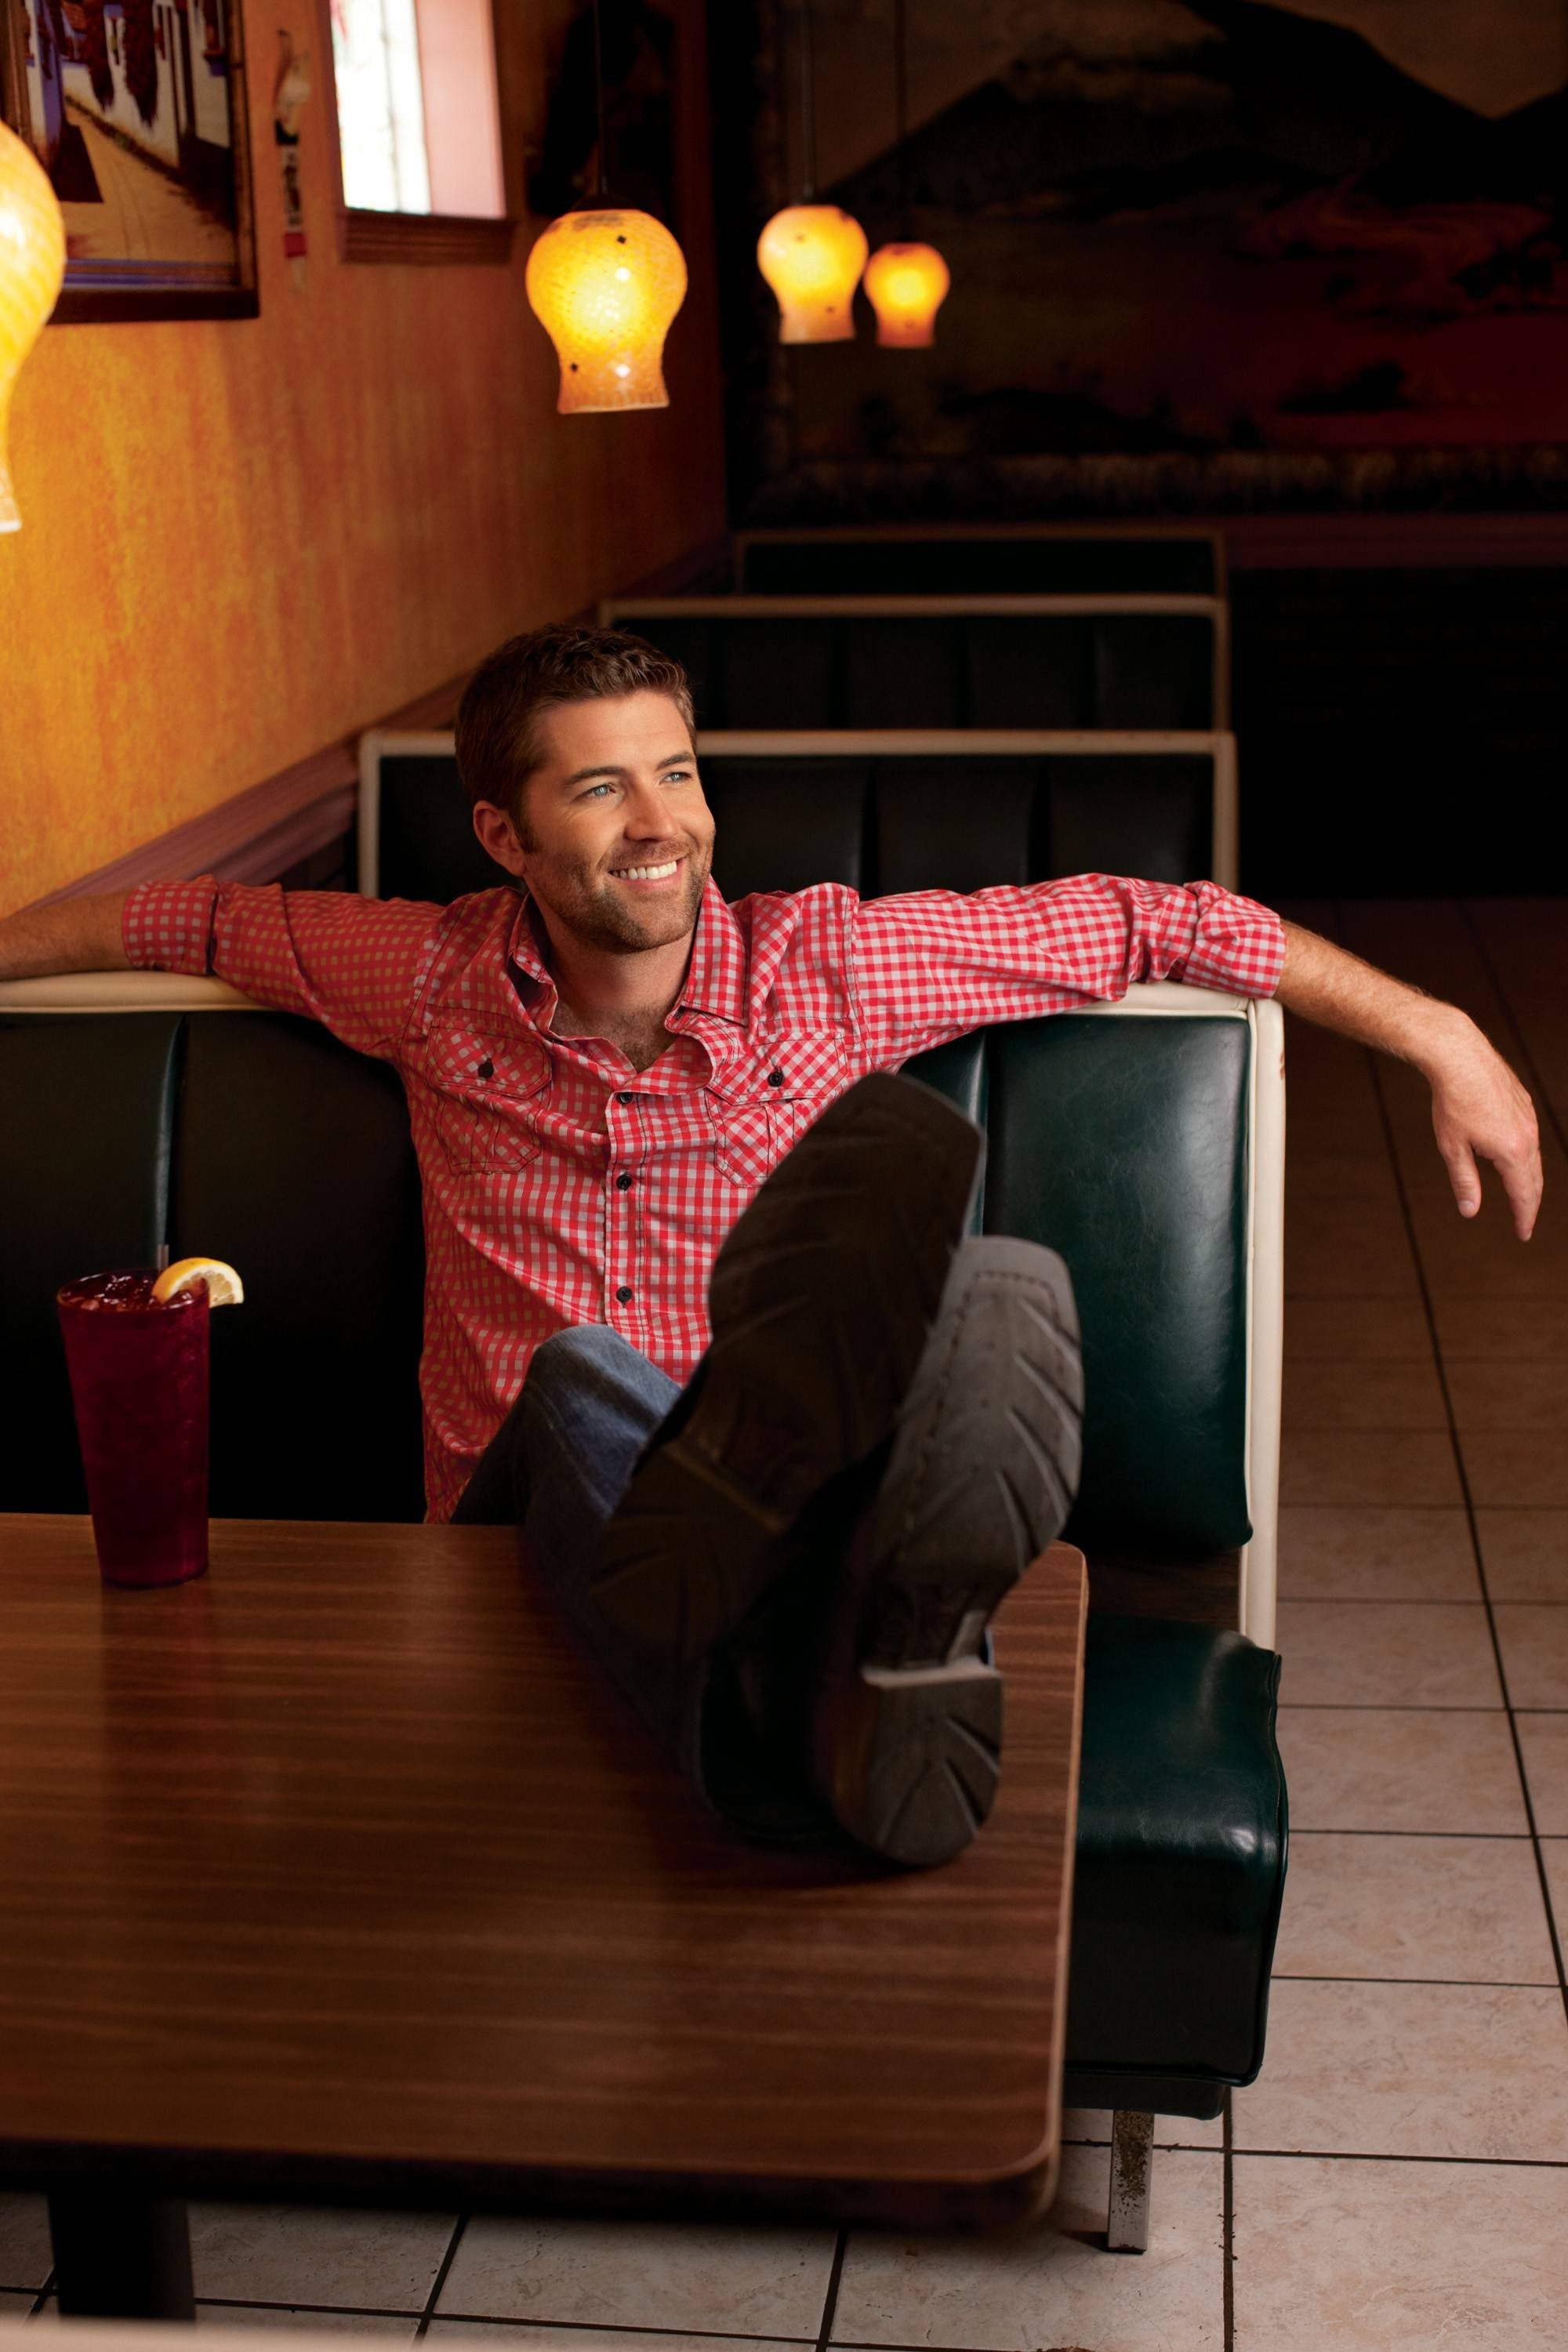 Country star Josh Turner performs at Festival Park adjacent to the Grand Victoria Casino in Elgin on Saturday, July 12.